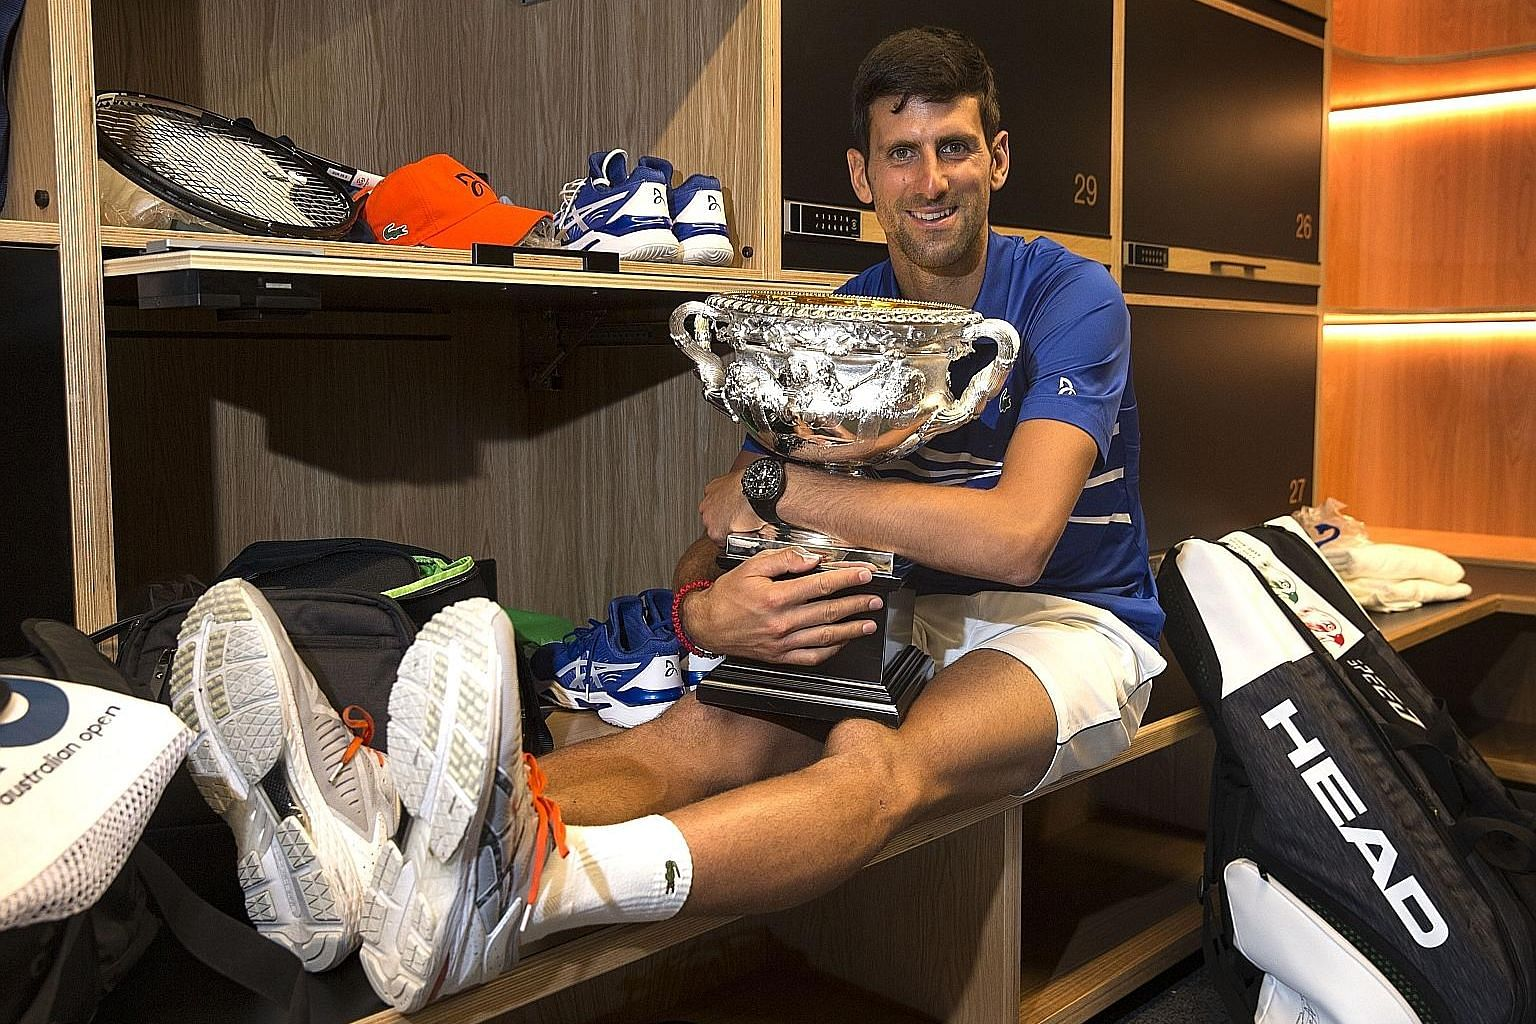 World No. 1 Novak Djokovic posing with the Norman Brookes Challenge Cup in the men's locker room after defeating Rafael Nadal in the men's singles final at the Australian Open in Melbourne yesterday.